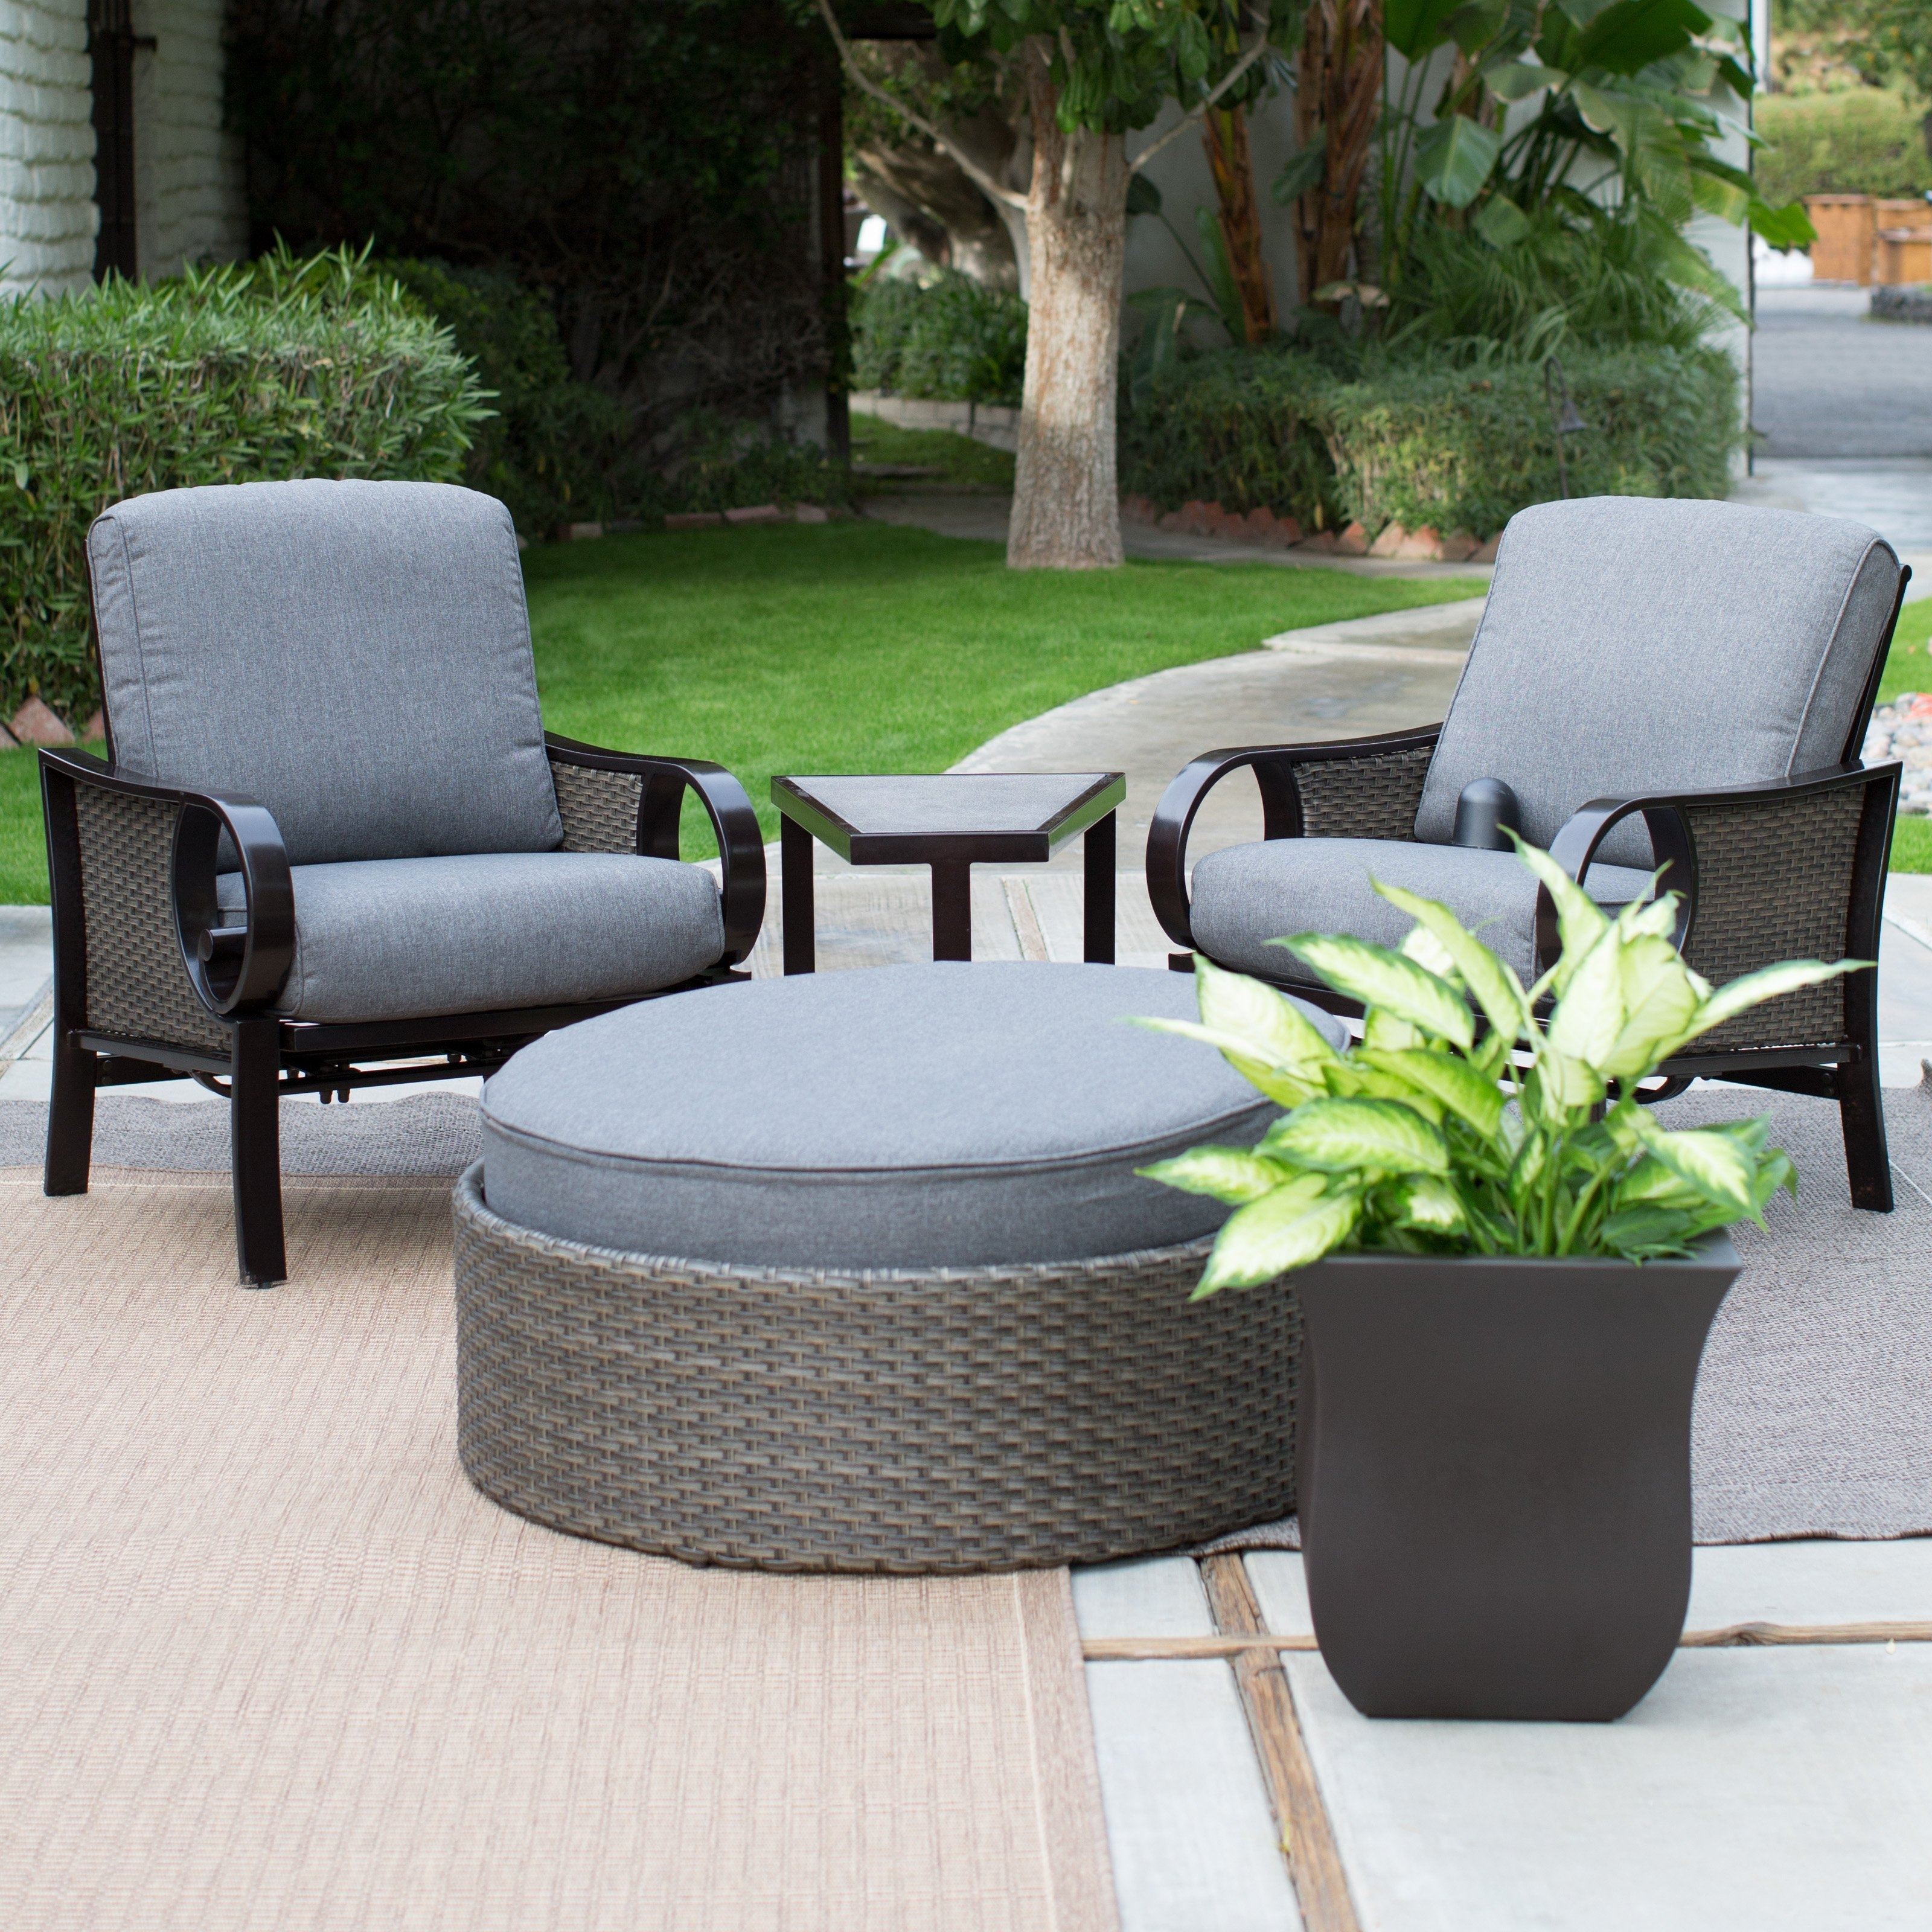 Patio Conversation Sets With Ottomans Throughout Best And Newest 22 Creative Patio Conversation Sets With Ottoman – Pixelmari (View 12 of 20)